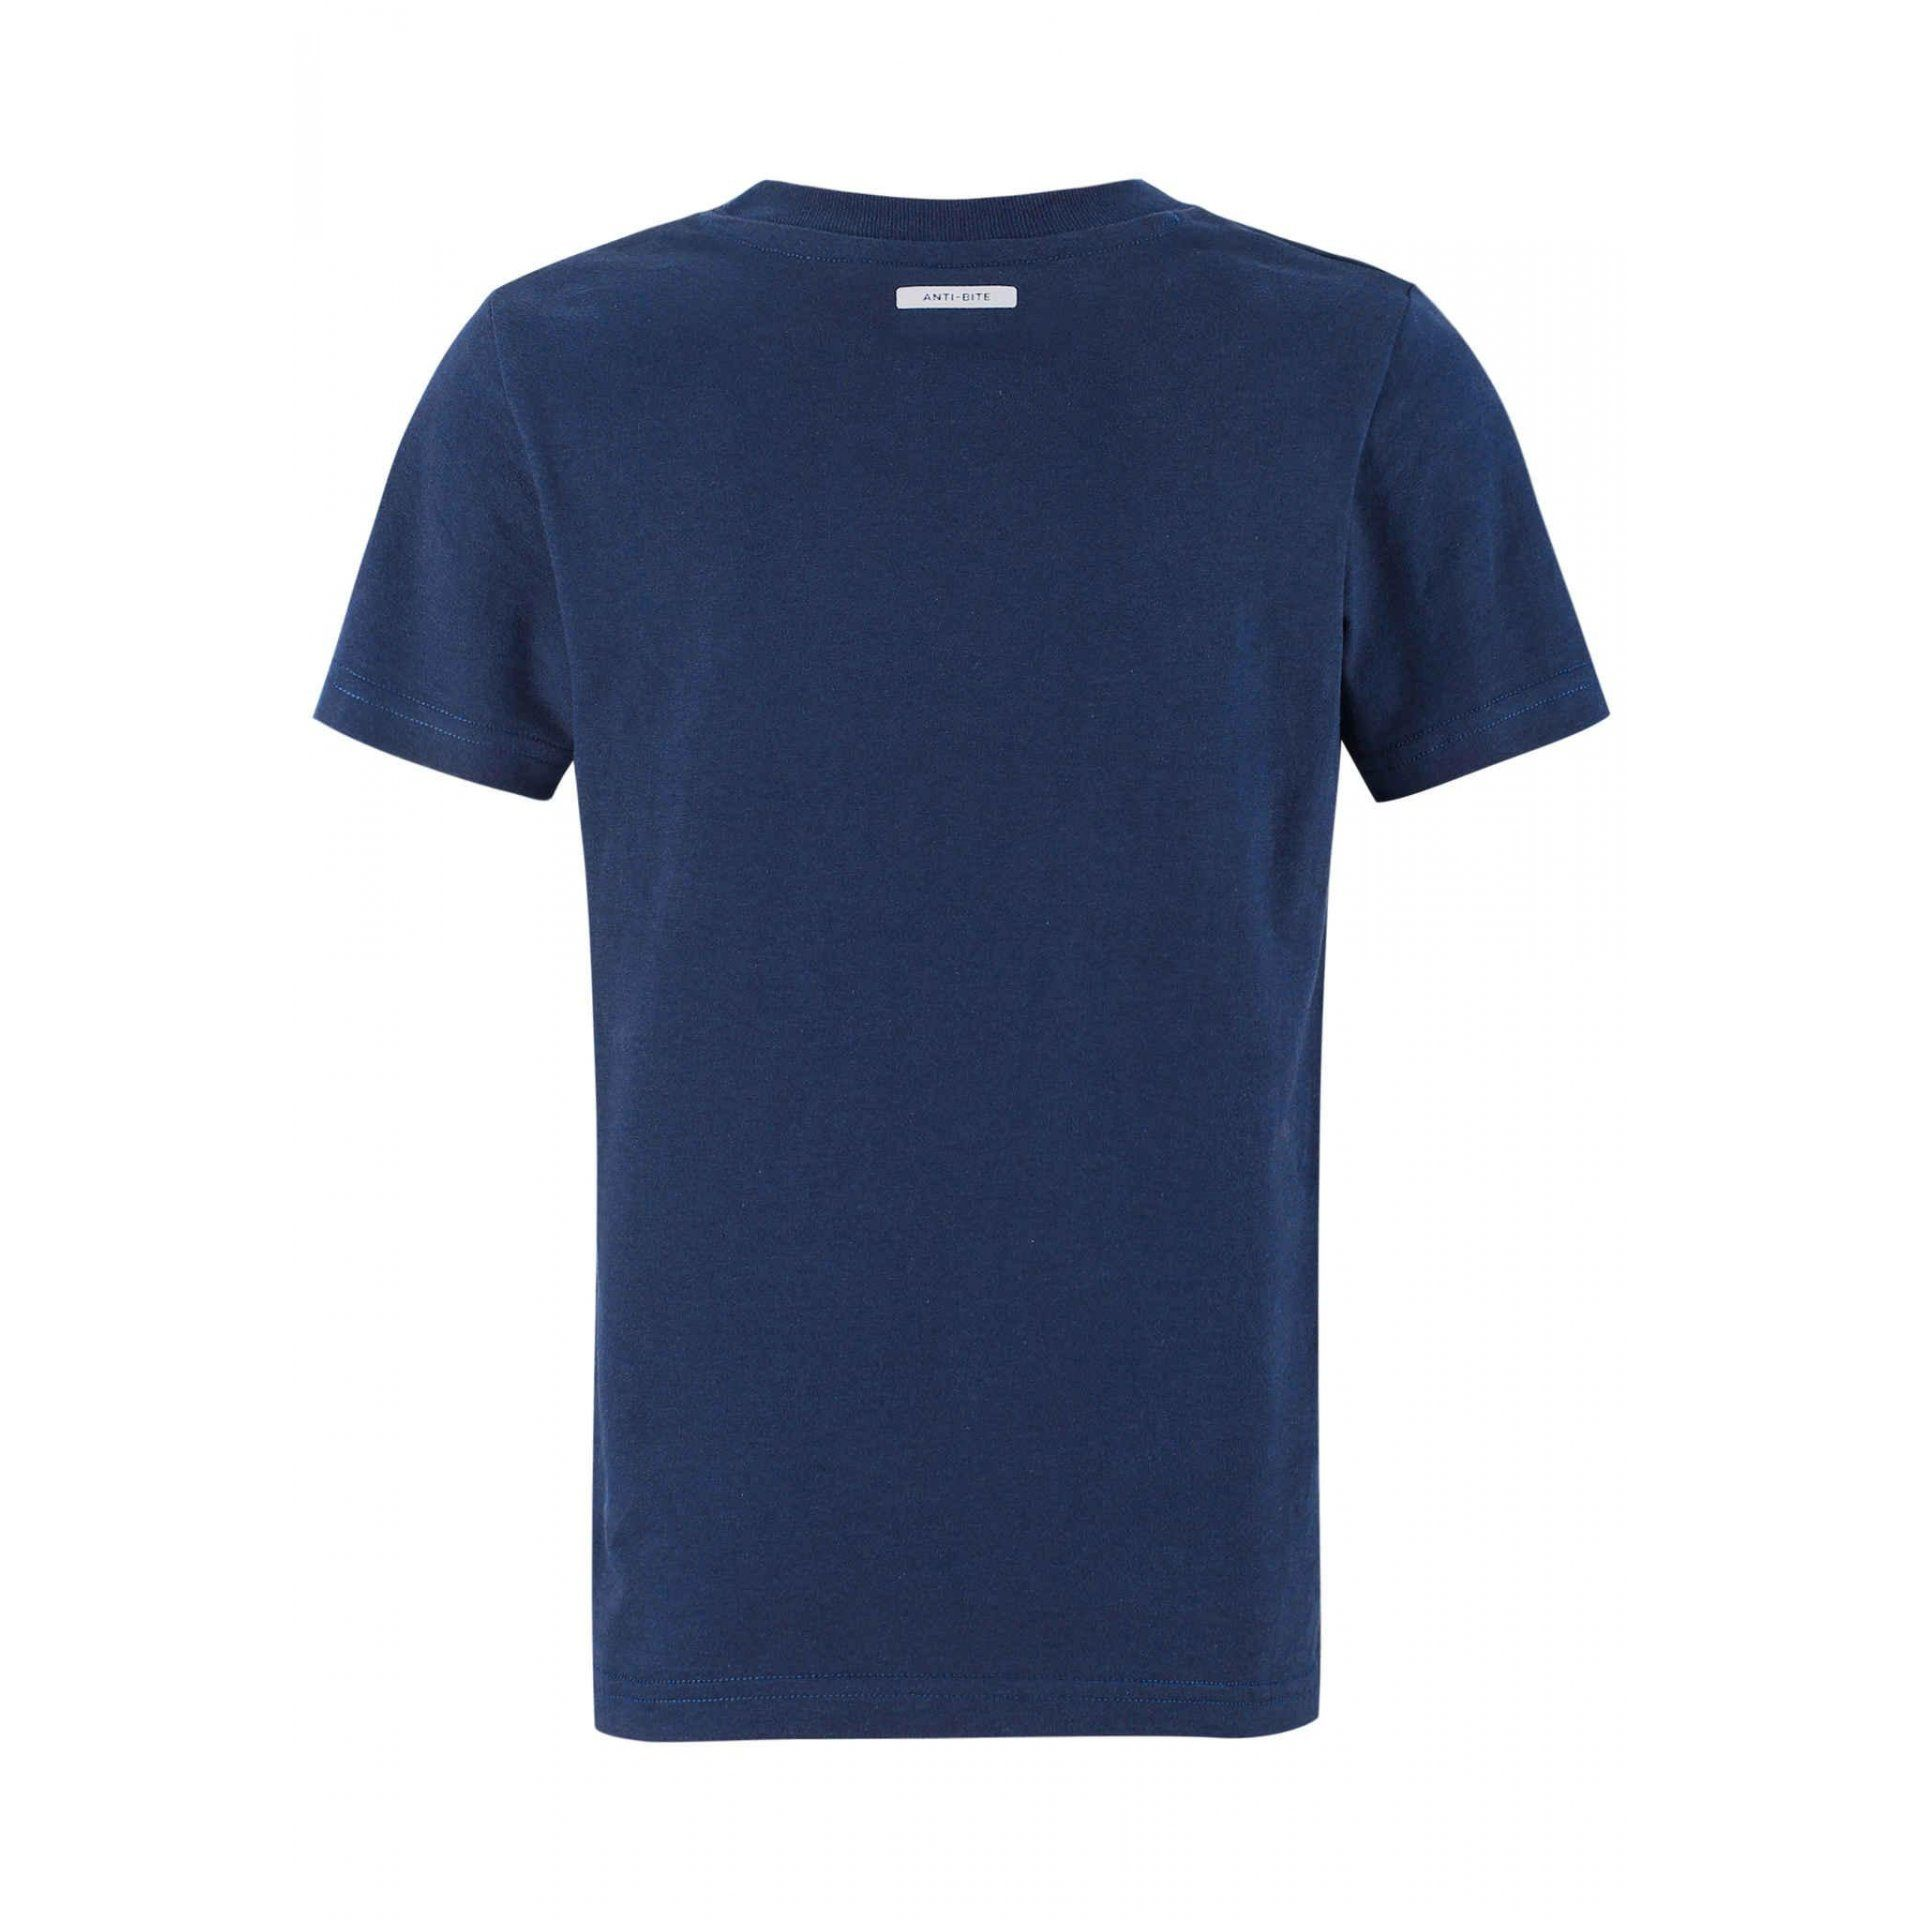 T-SHIRT REIMA SAILBOAT 536503-6980 NAVY TYŁ